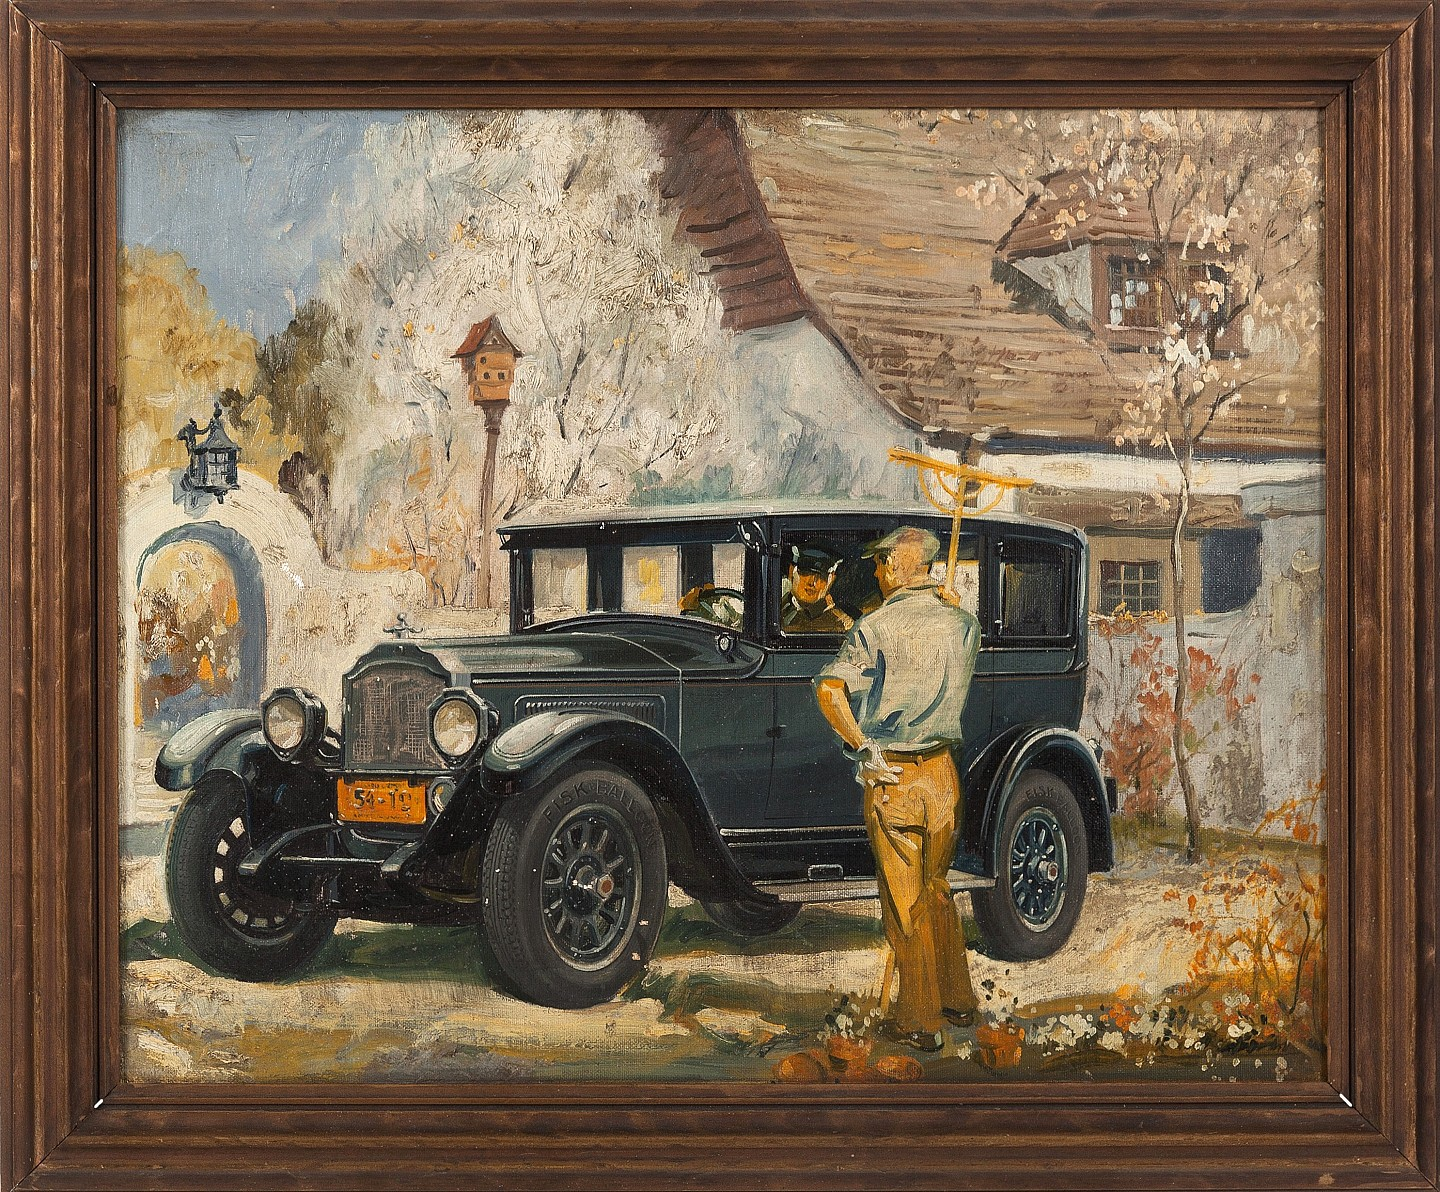 1920s Packard Painting- SOLD by Artist Unknown